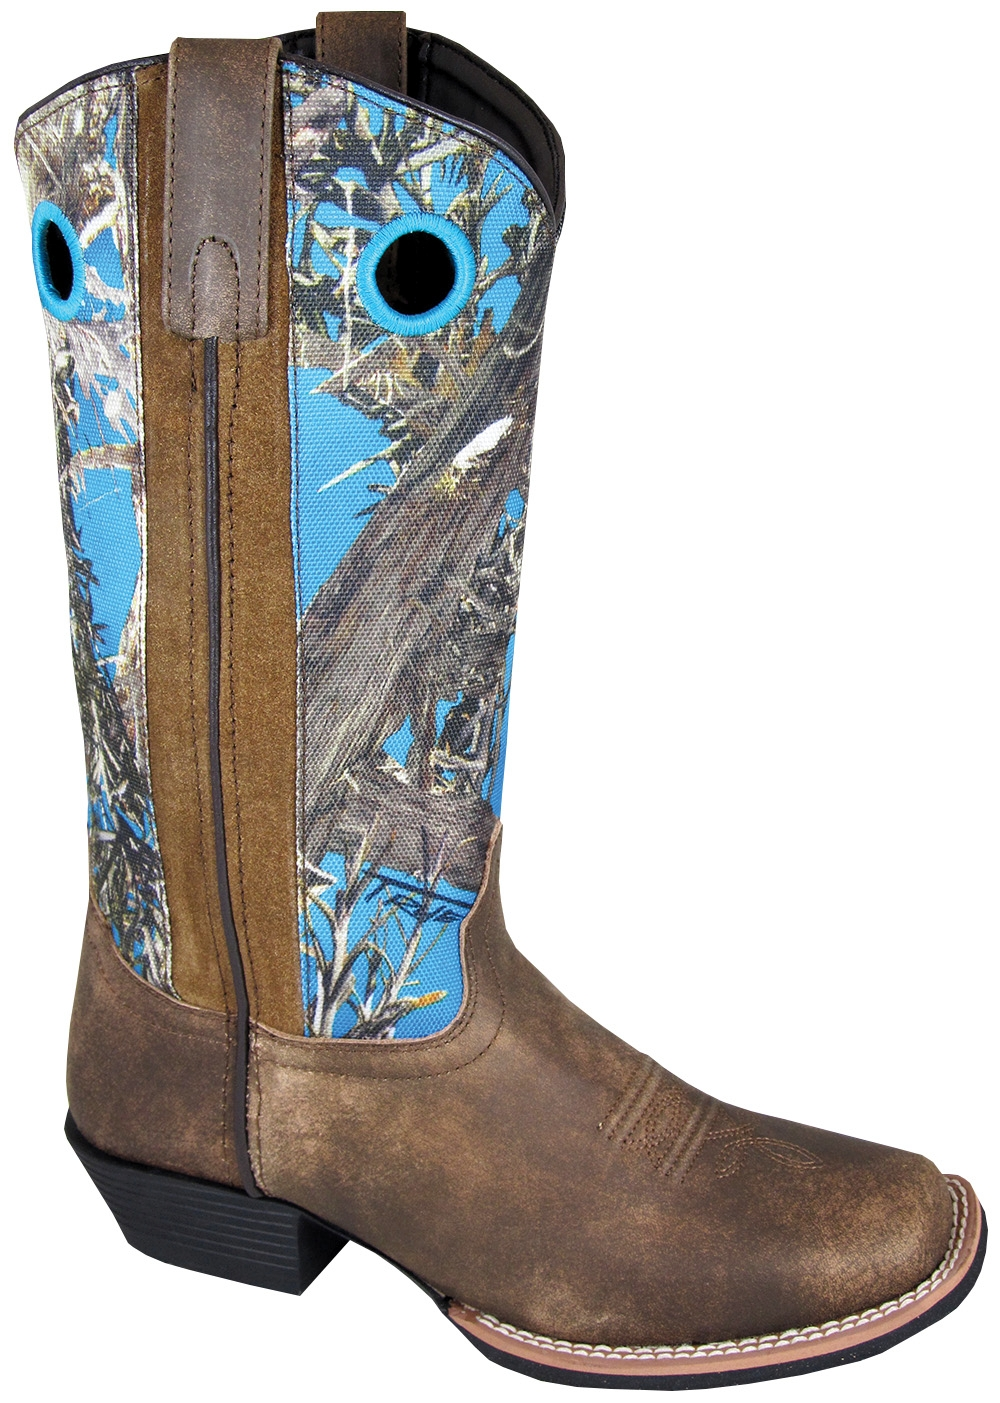 Womens cowboy boots USA Made Cowboy Boots for Women